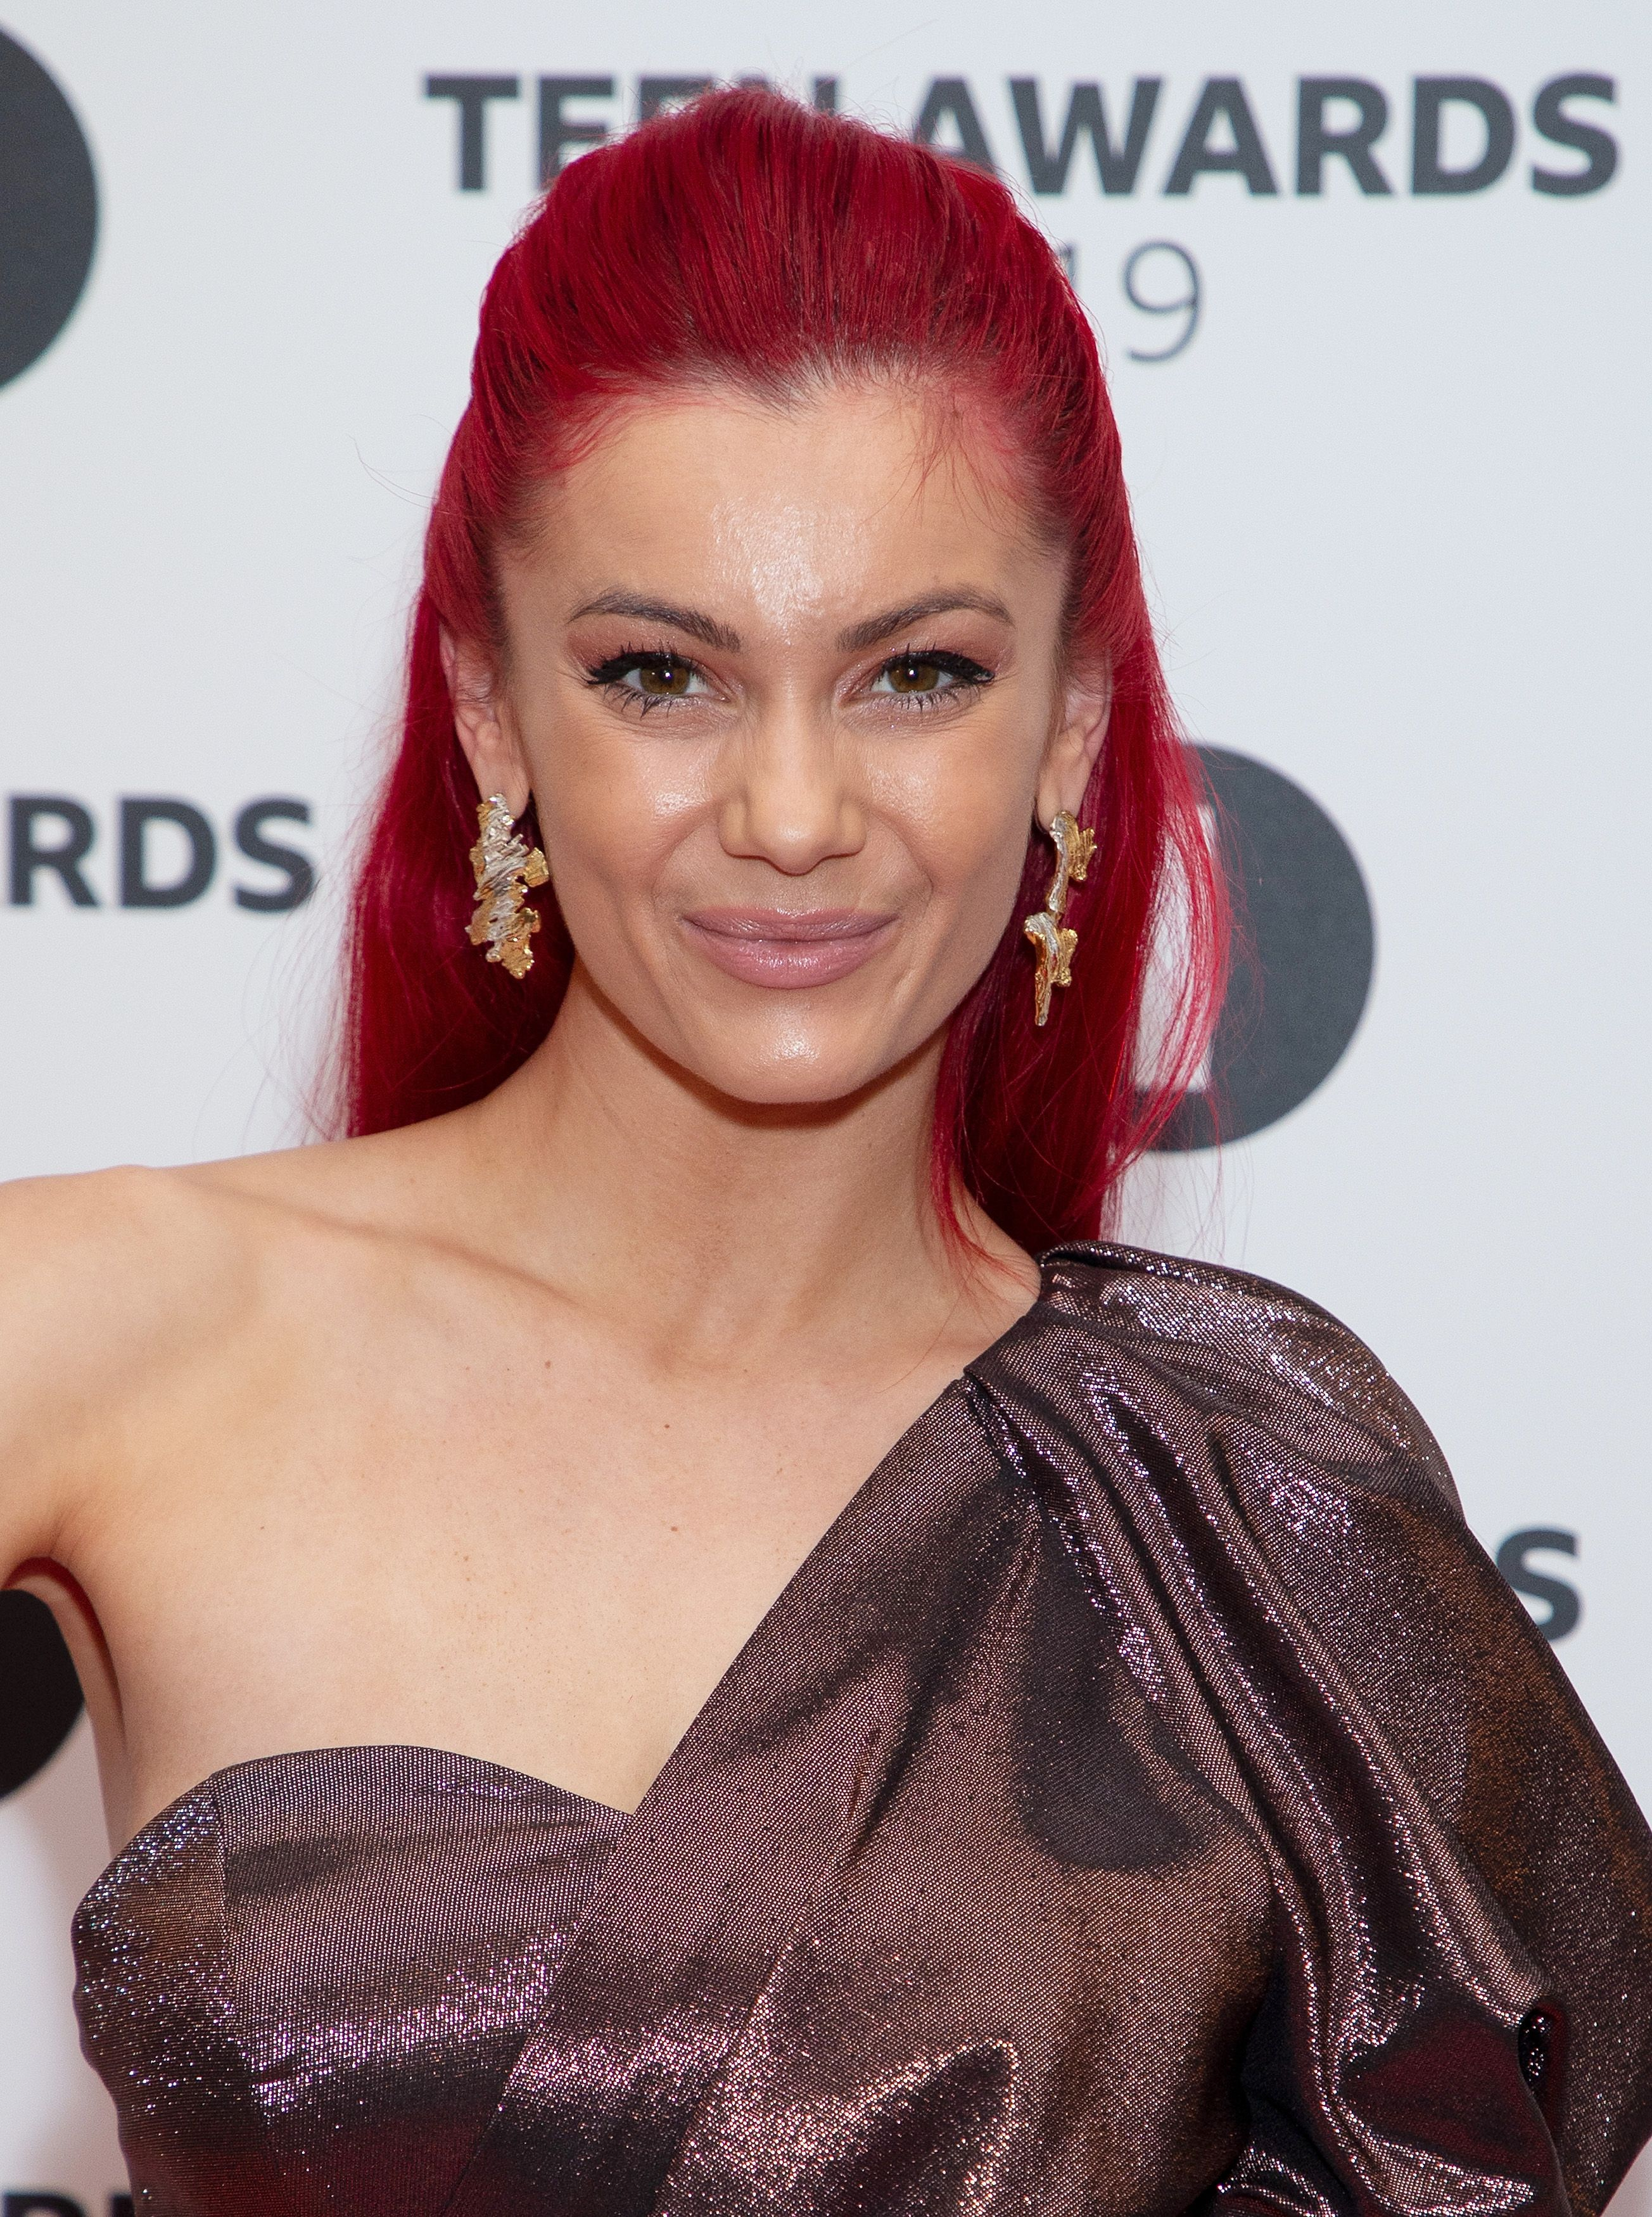 A Nutritionist Analyses Strictly Star Dianne Buswell's Week on a Plate